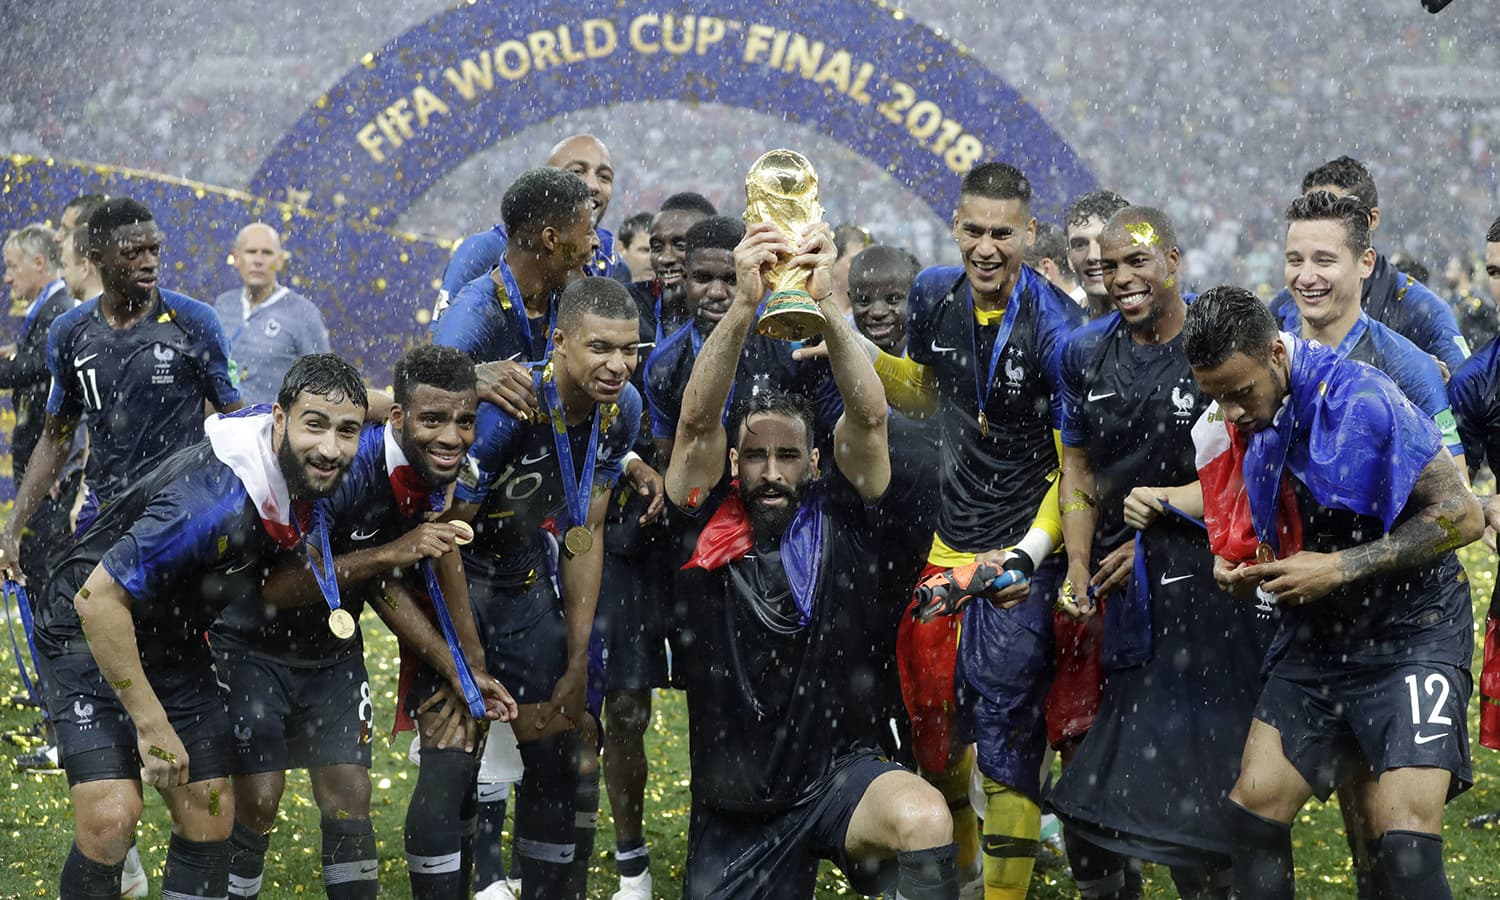 France's Adil Rami celebrates with the trophy after the final match between France and Croatia. — AP